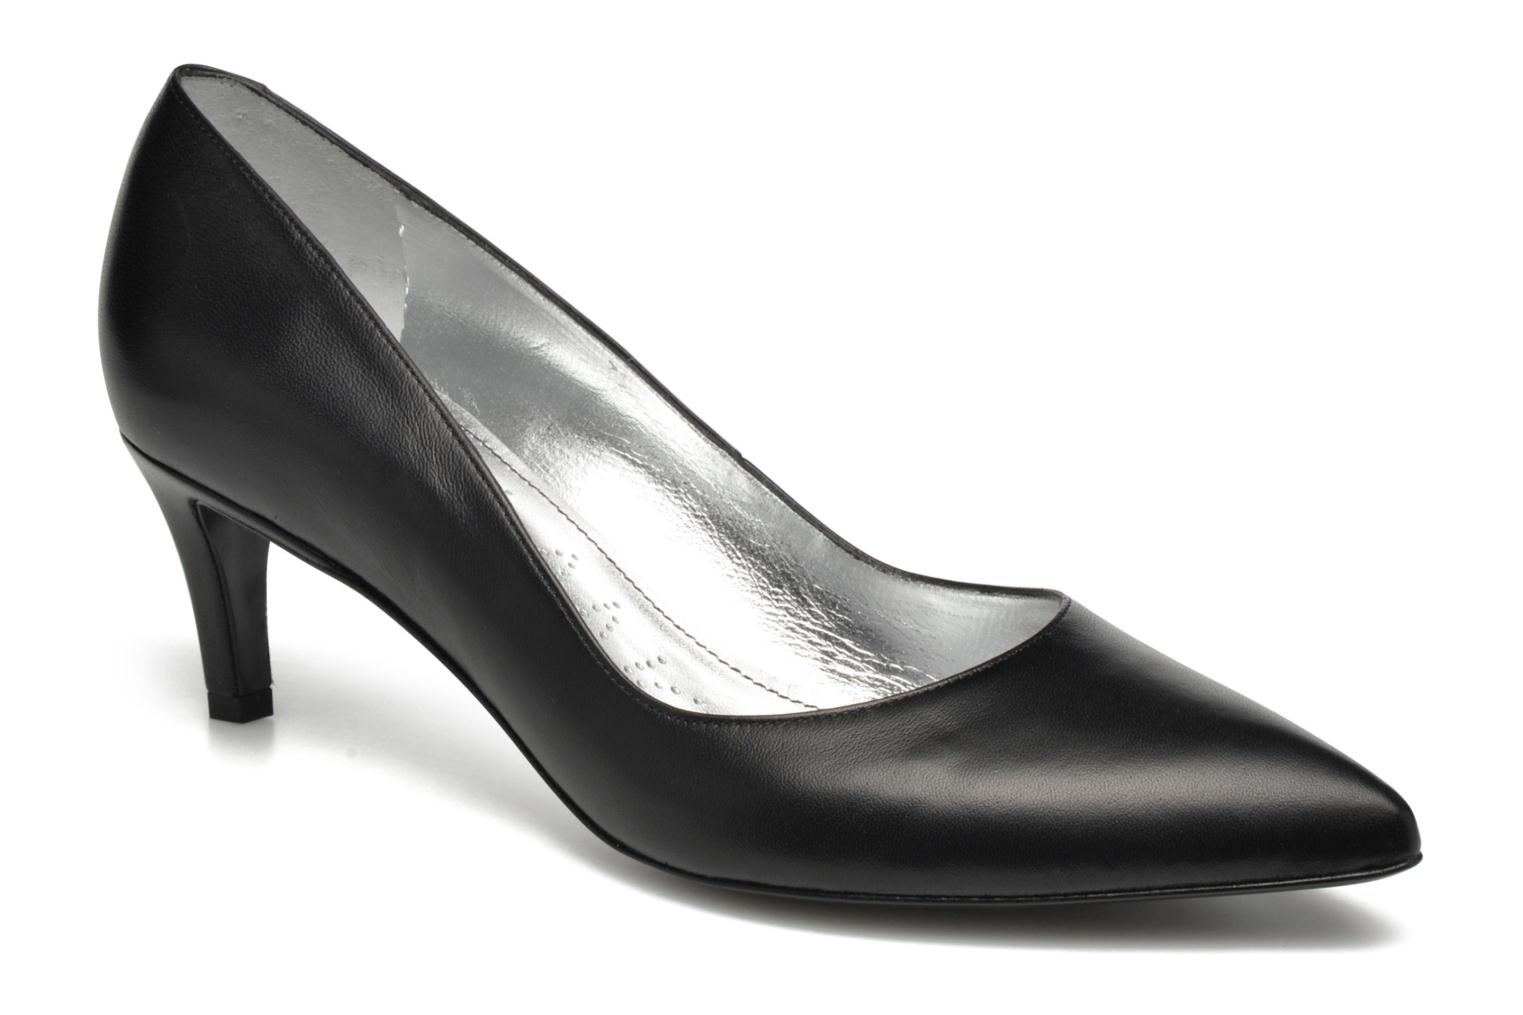 pumps-itlys-4-pumps-by-free-lance